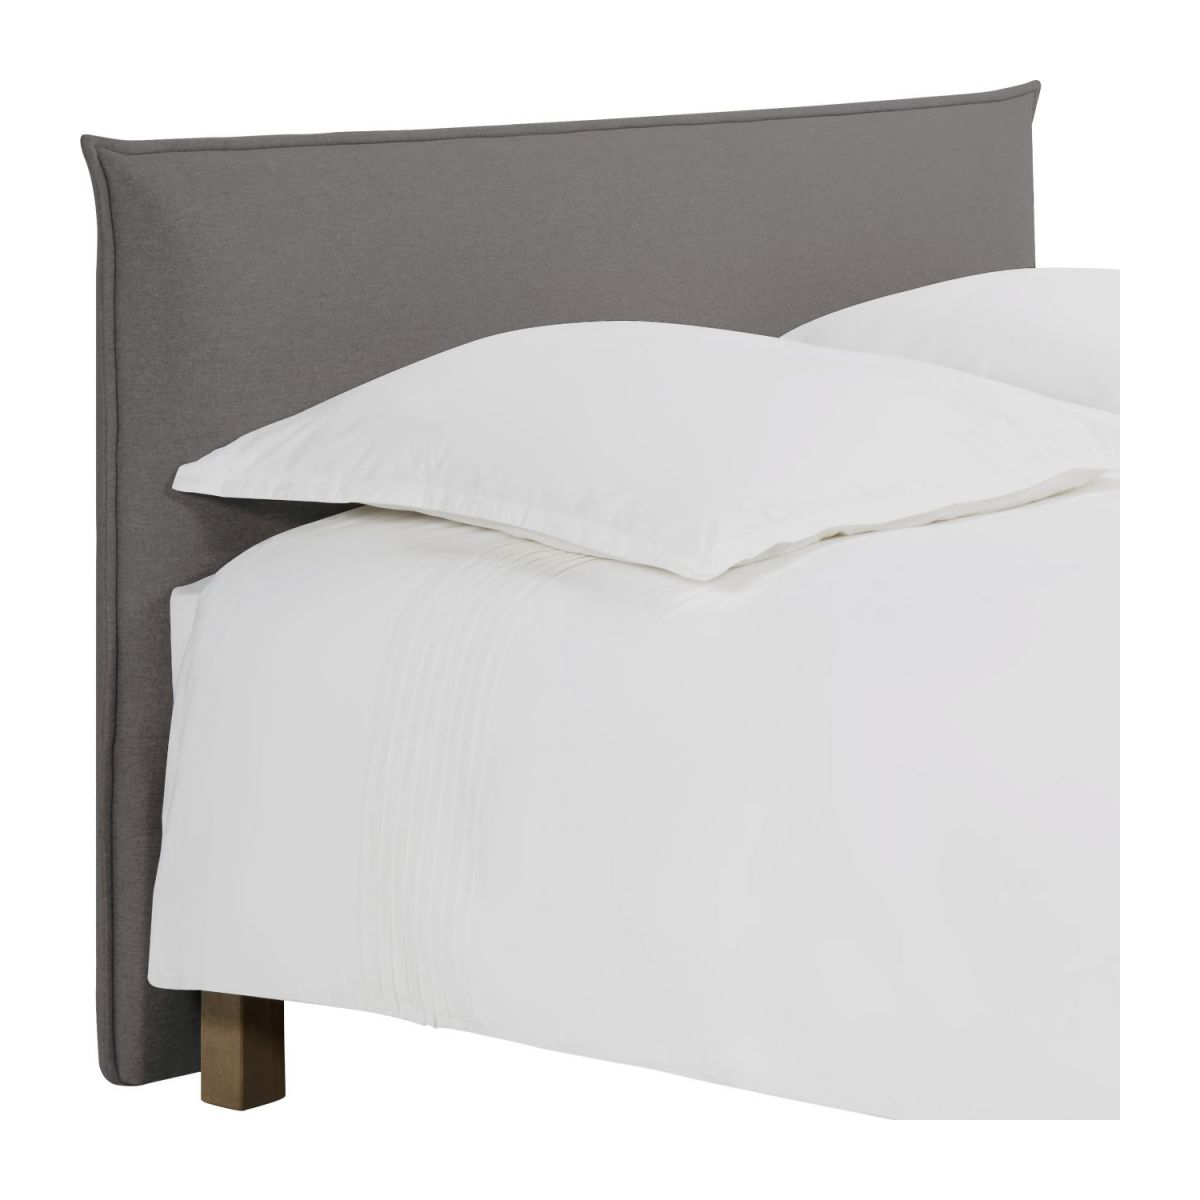 Headboard for 140cm box spring in fabric, mouse-grey n°1